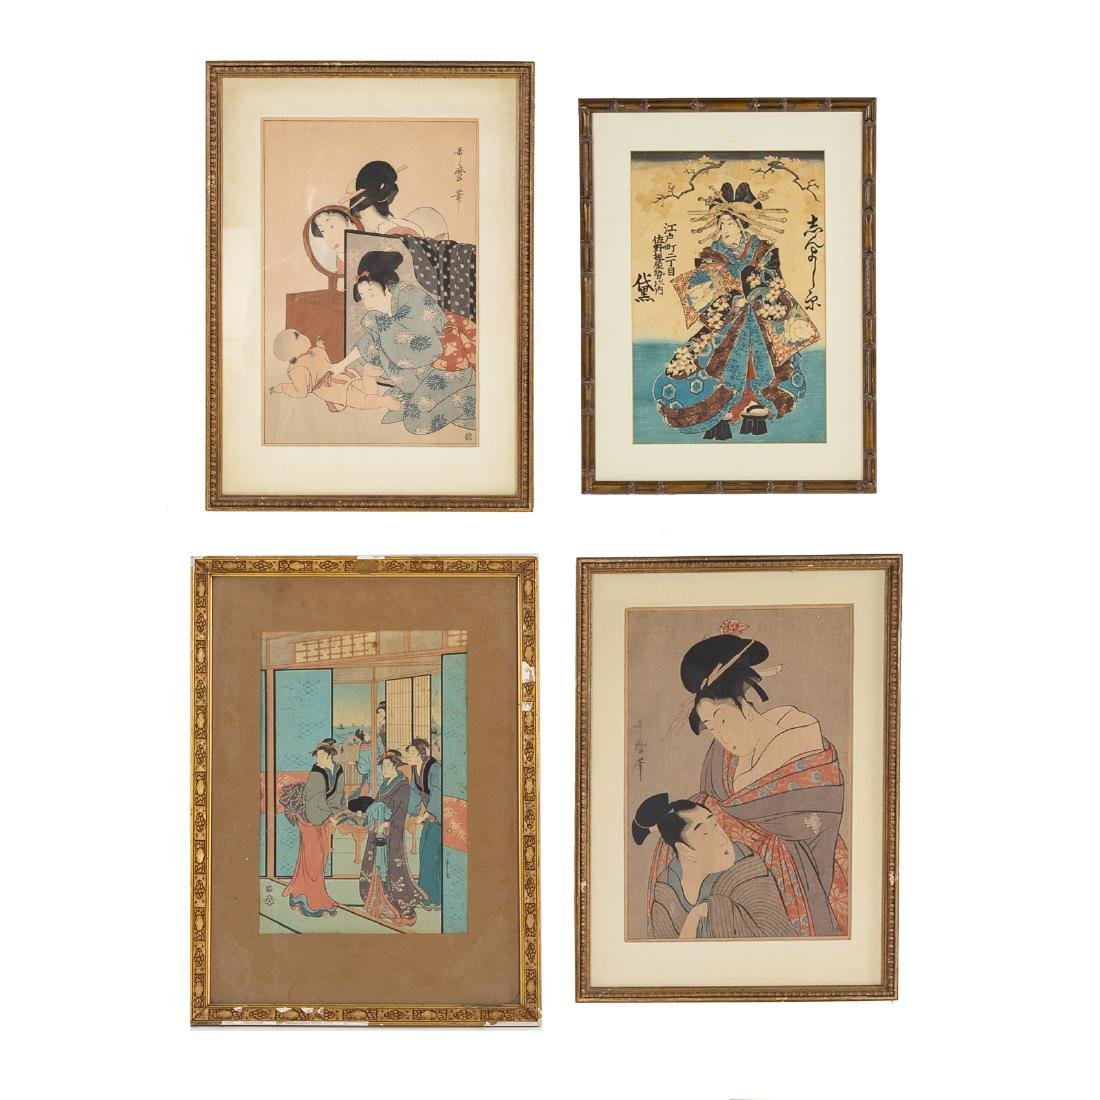 Four Japanese color woodblock prints